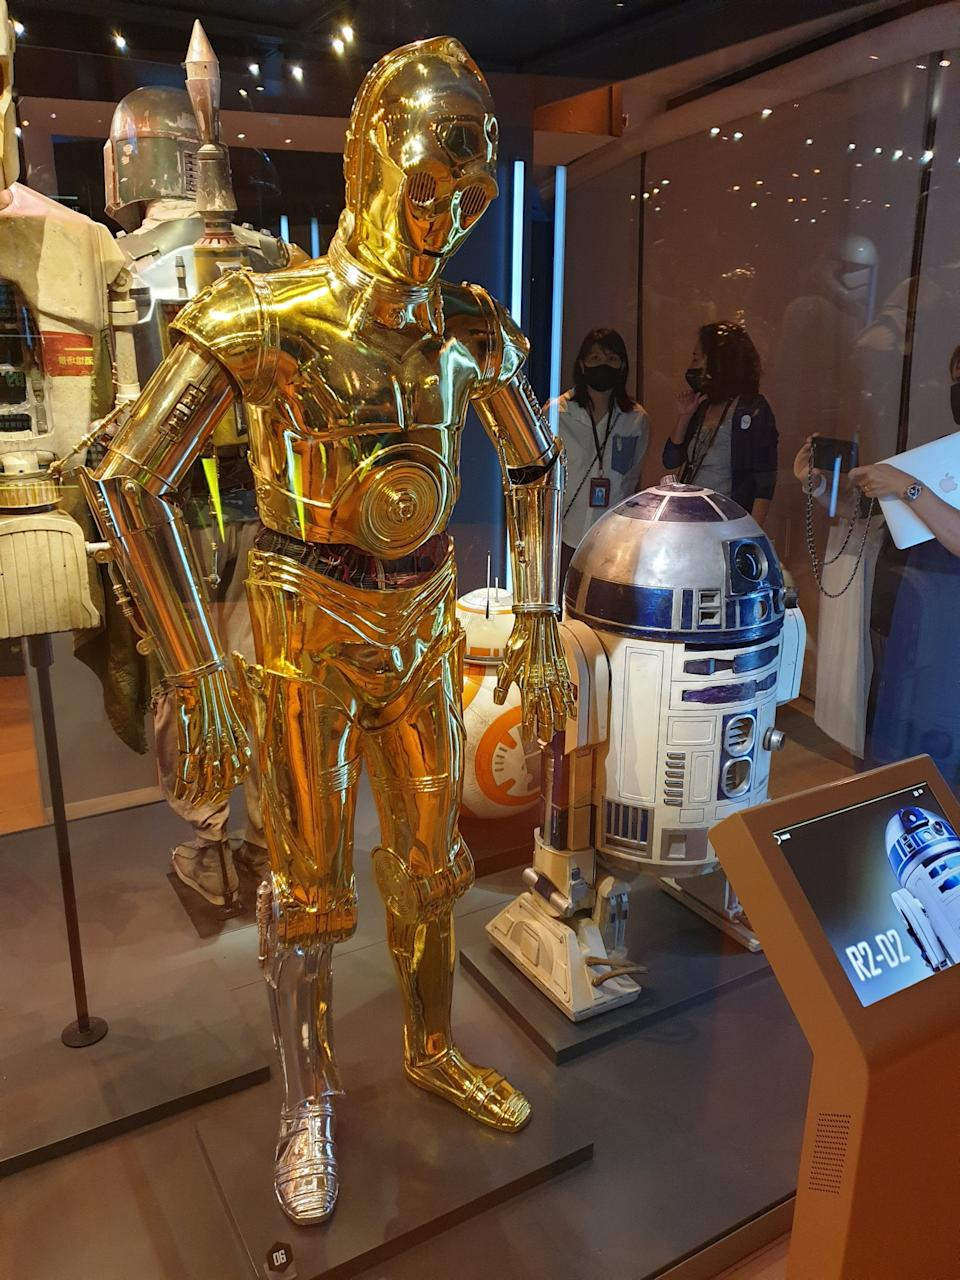 Props of droids C-3PO and R2-D2 at the Star Wars Identities exhibition in Singapore at the Artscience Museum. (Photo: Teng Yong Ping)